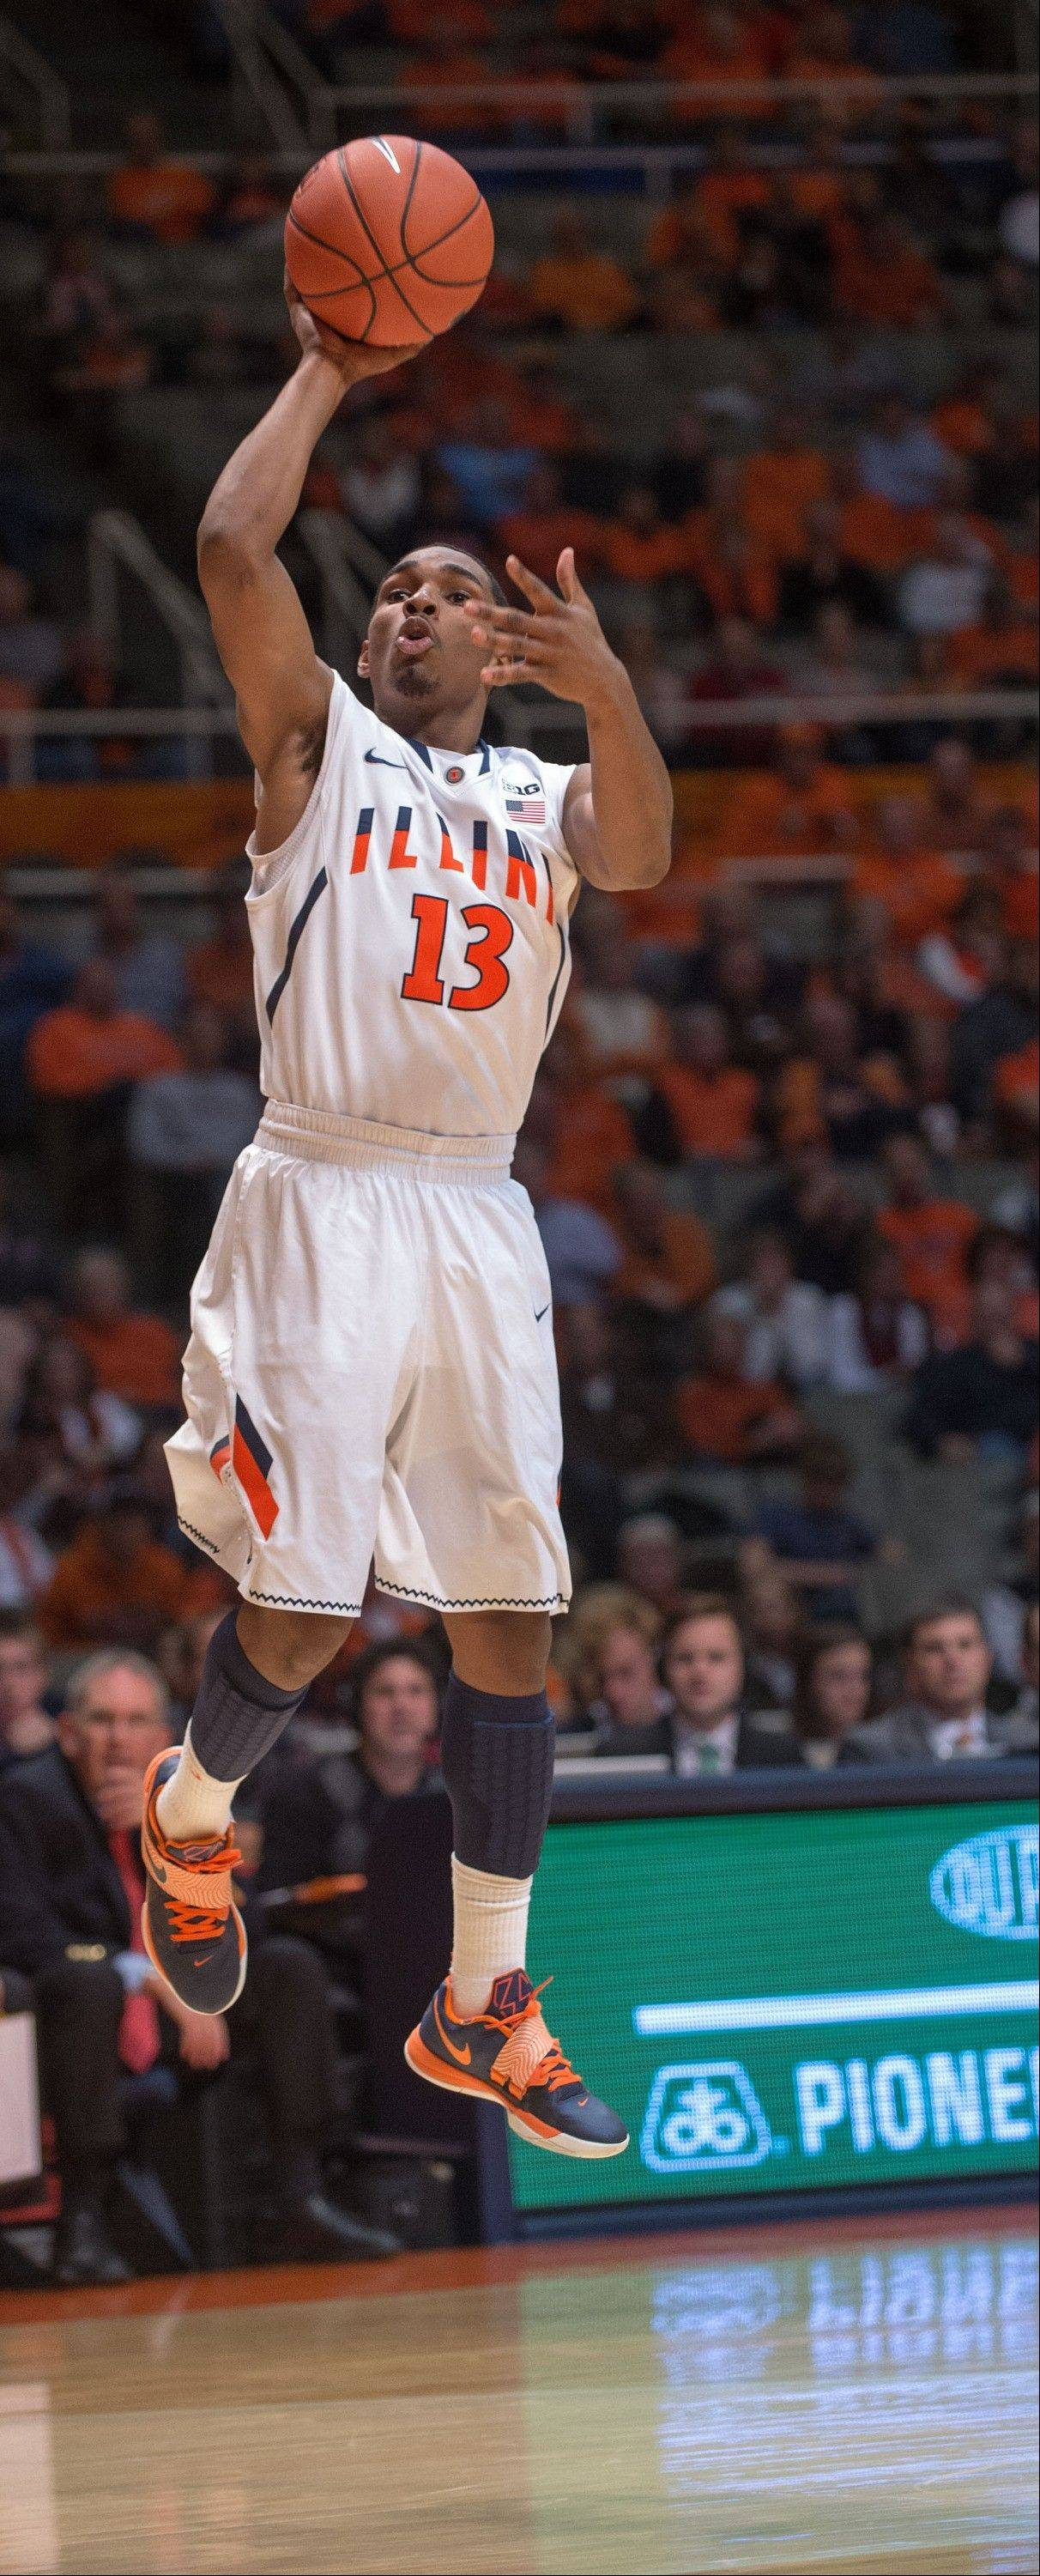 Illinois' Tracy Abrams (13) shoots a three-point basket during the first half of an NCAA college basketball game on Wednesday Nov. 13, 2013, in Champaign, Ill.